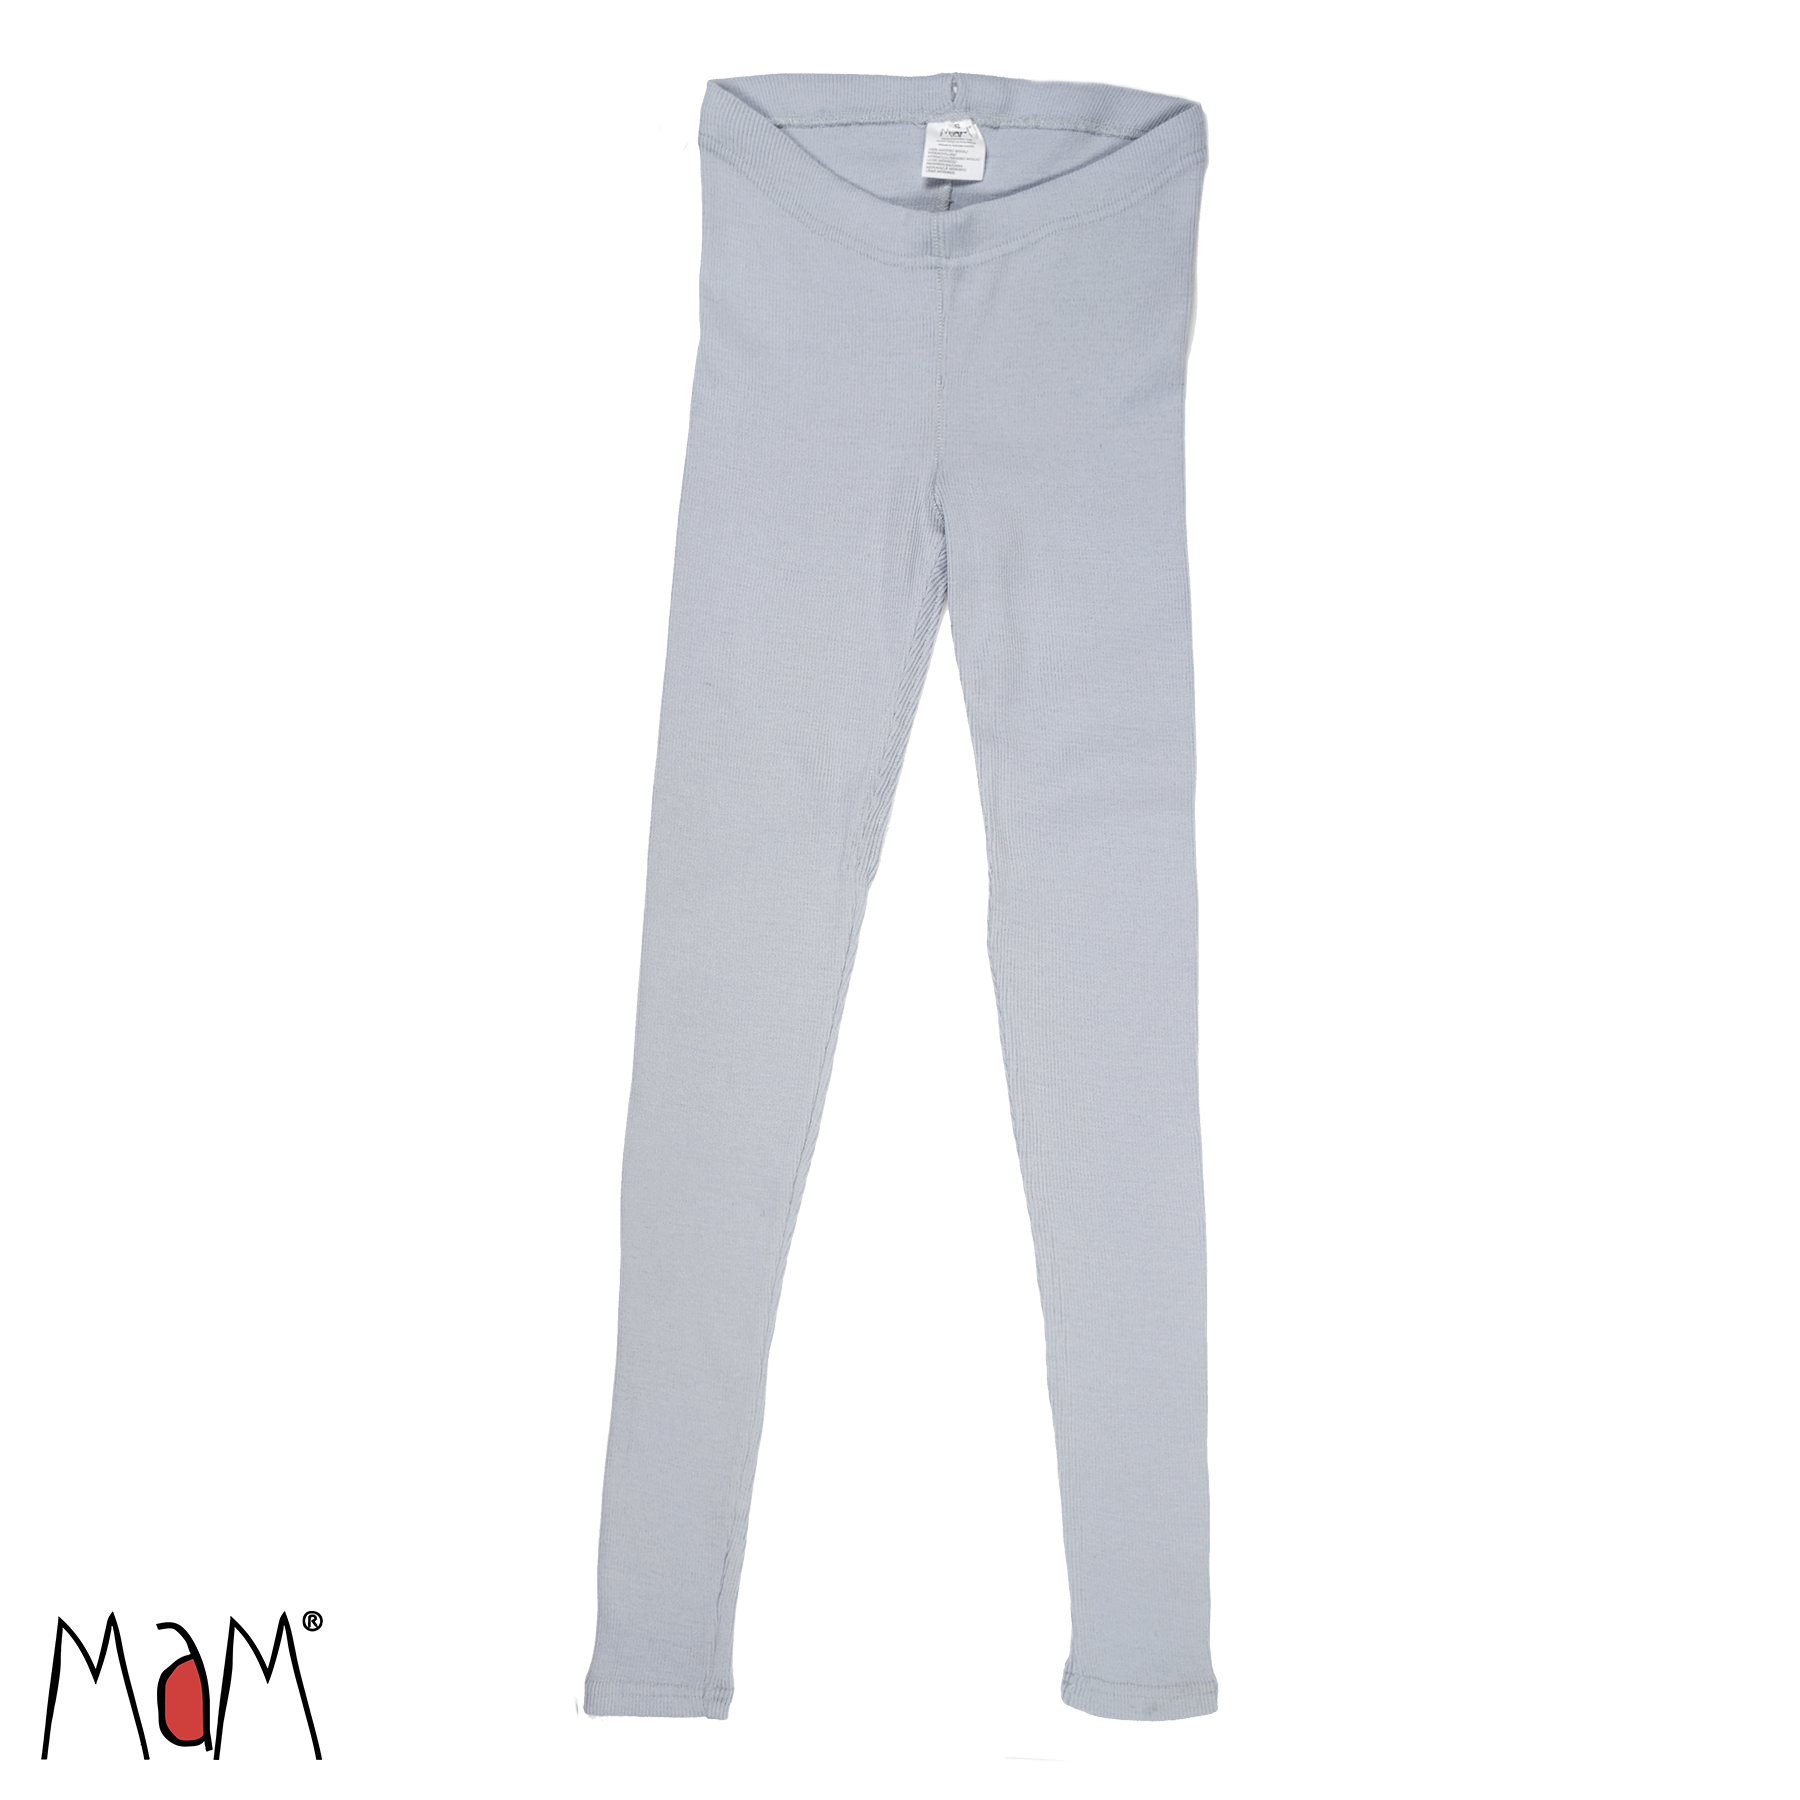 MaM Natural Woollies All-Time Leggings